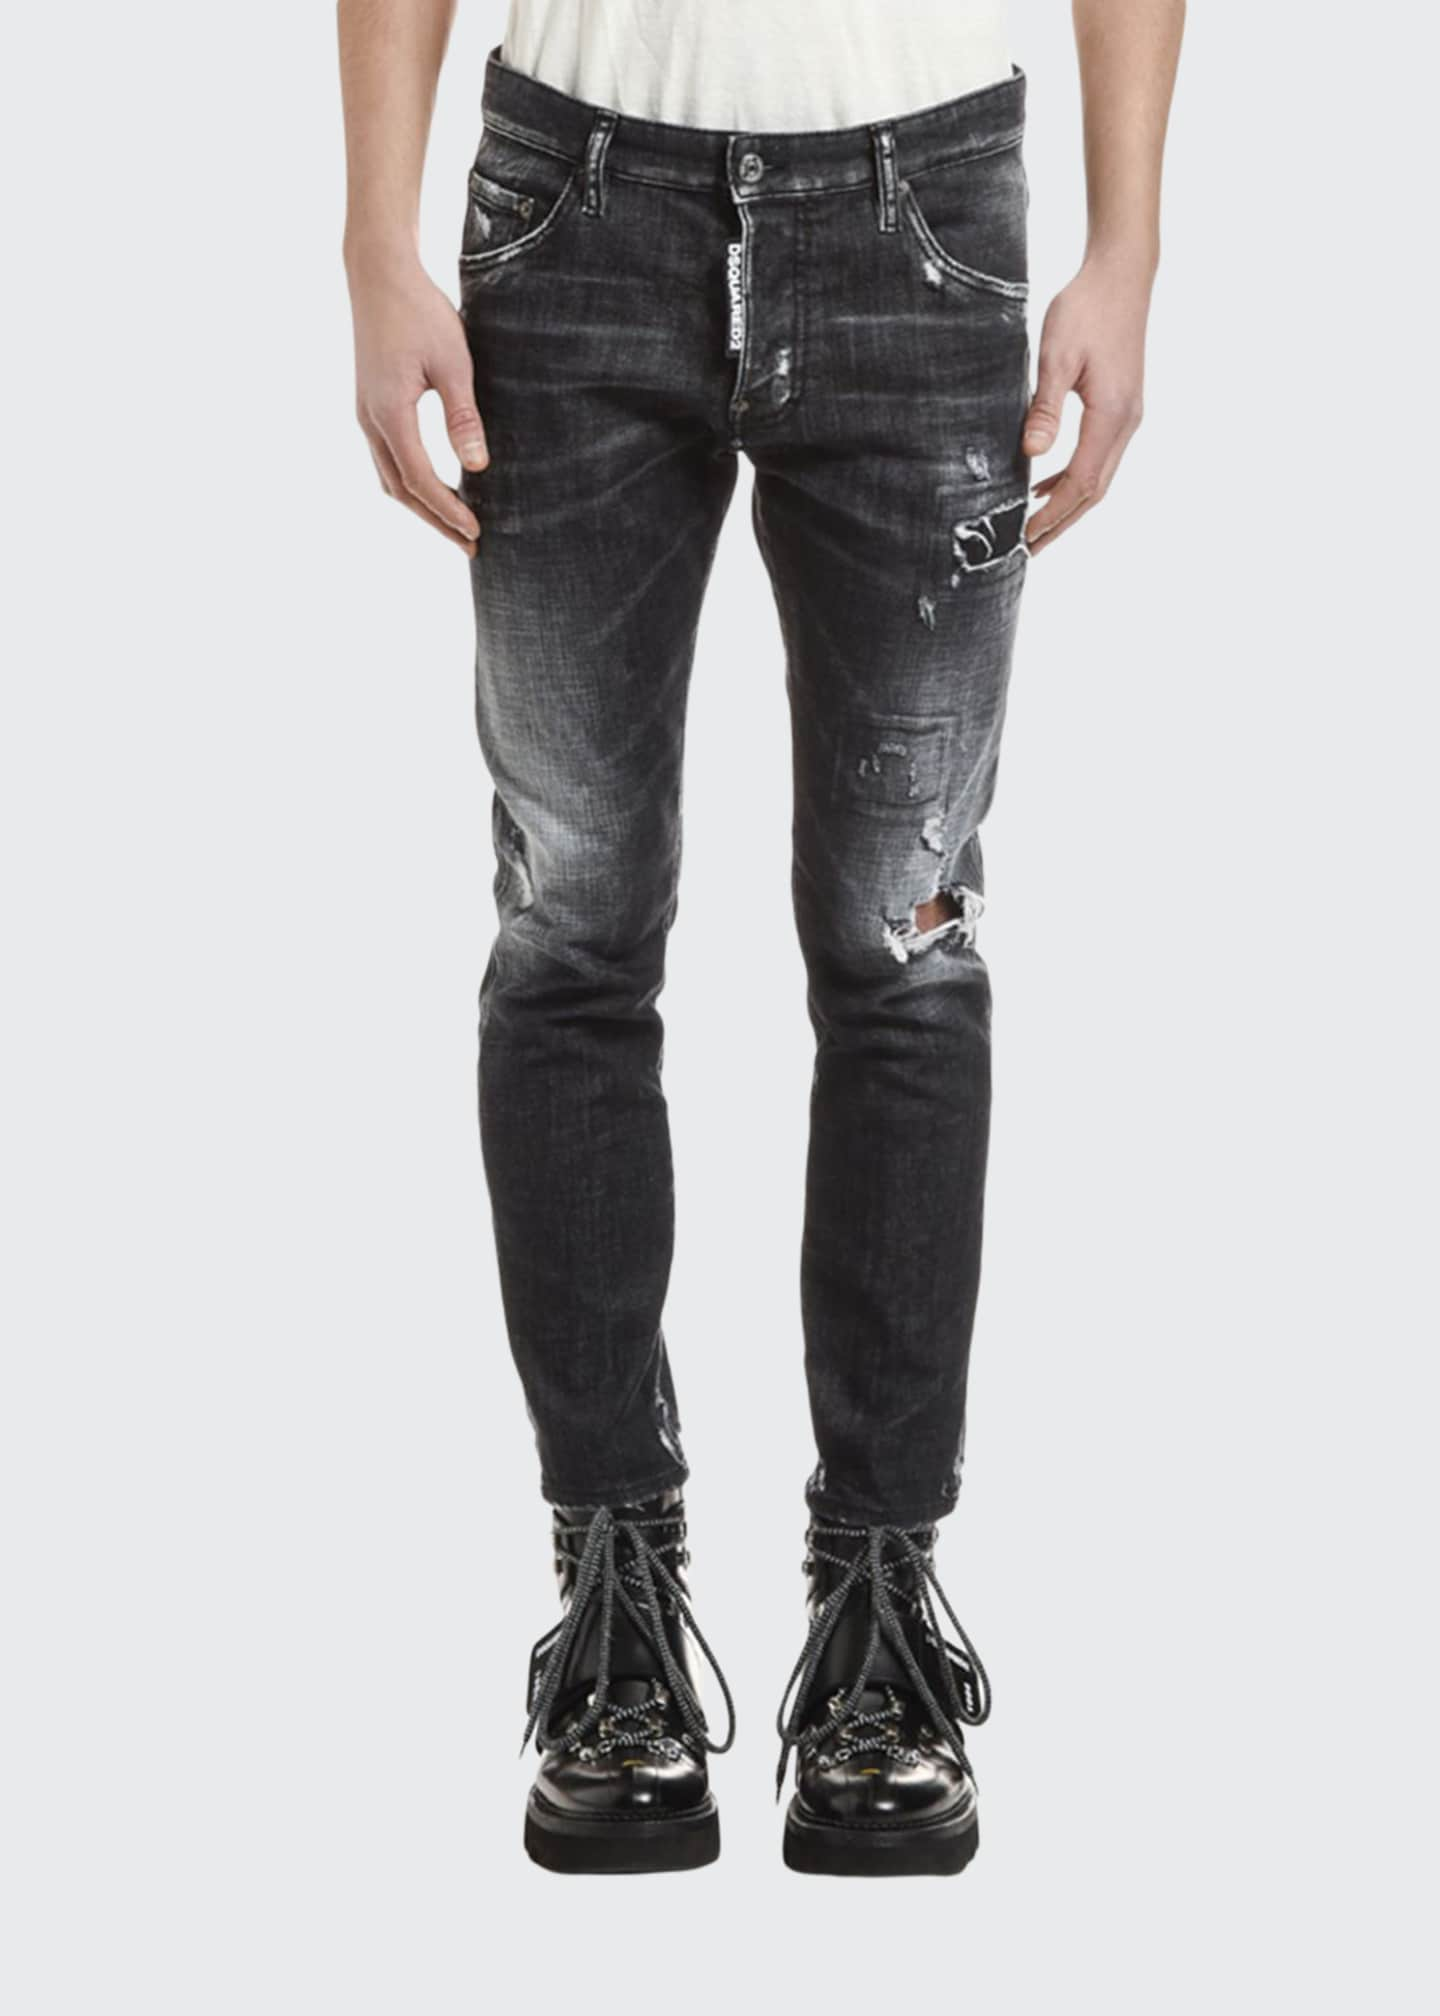 Dsquared2 Men's Distressed Skater Jeans